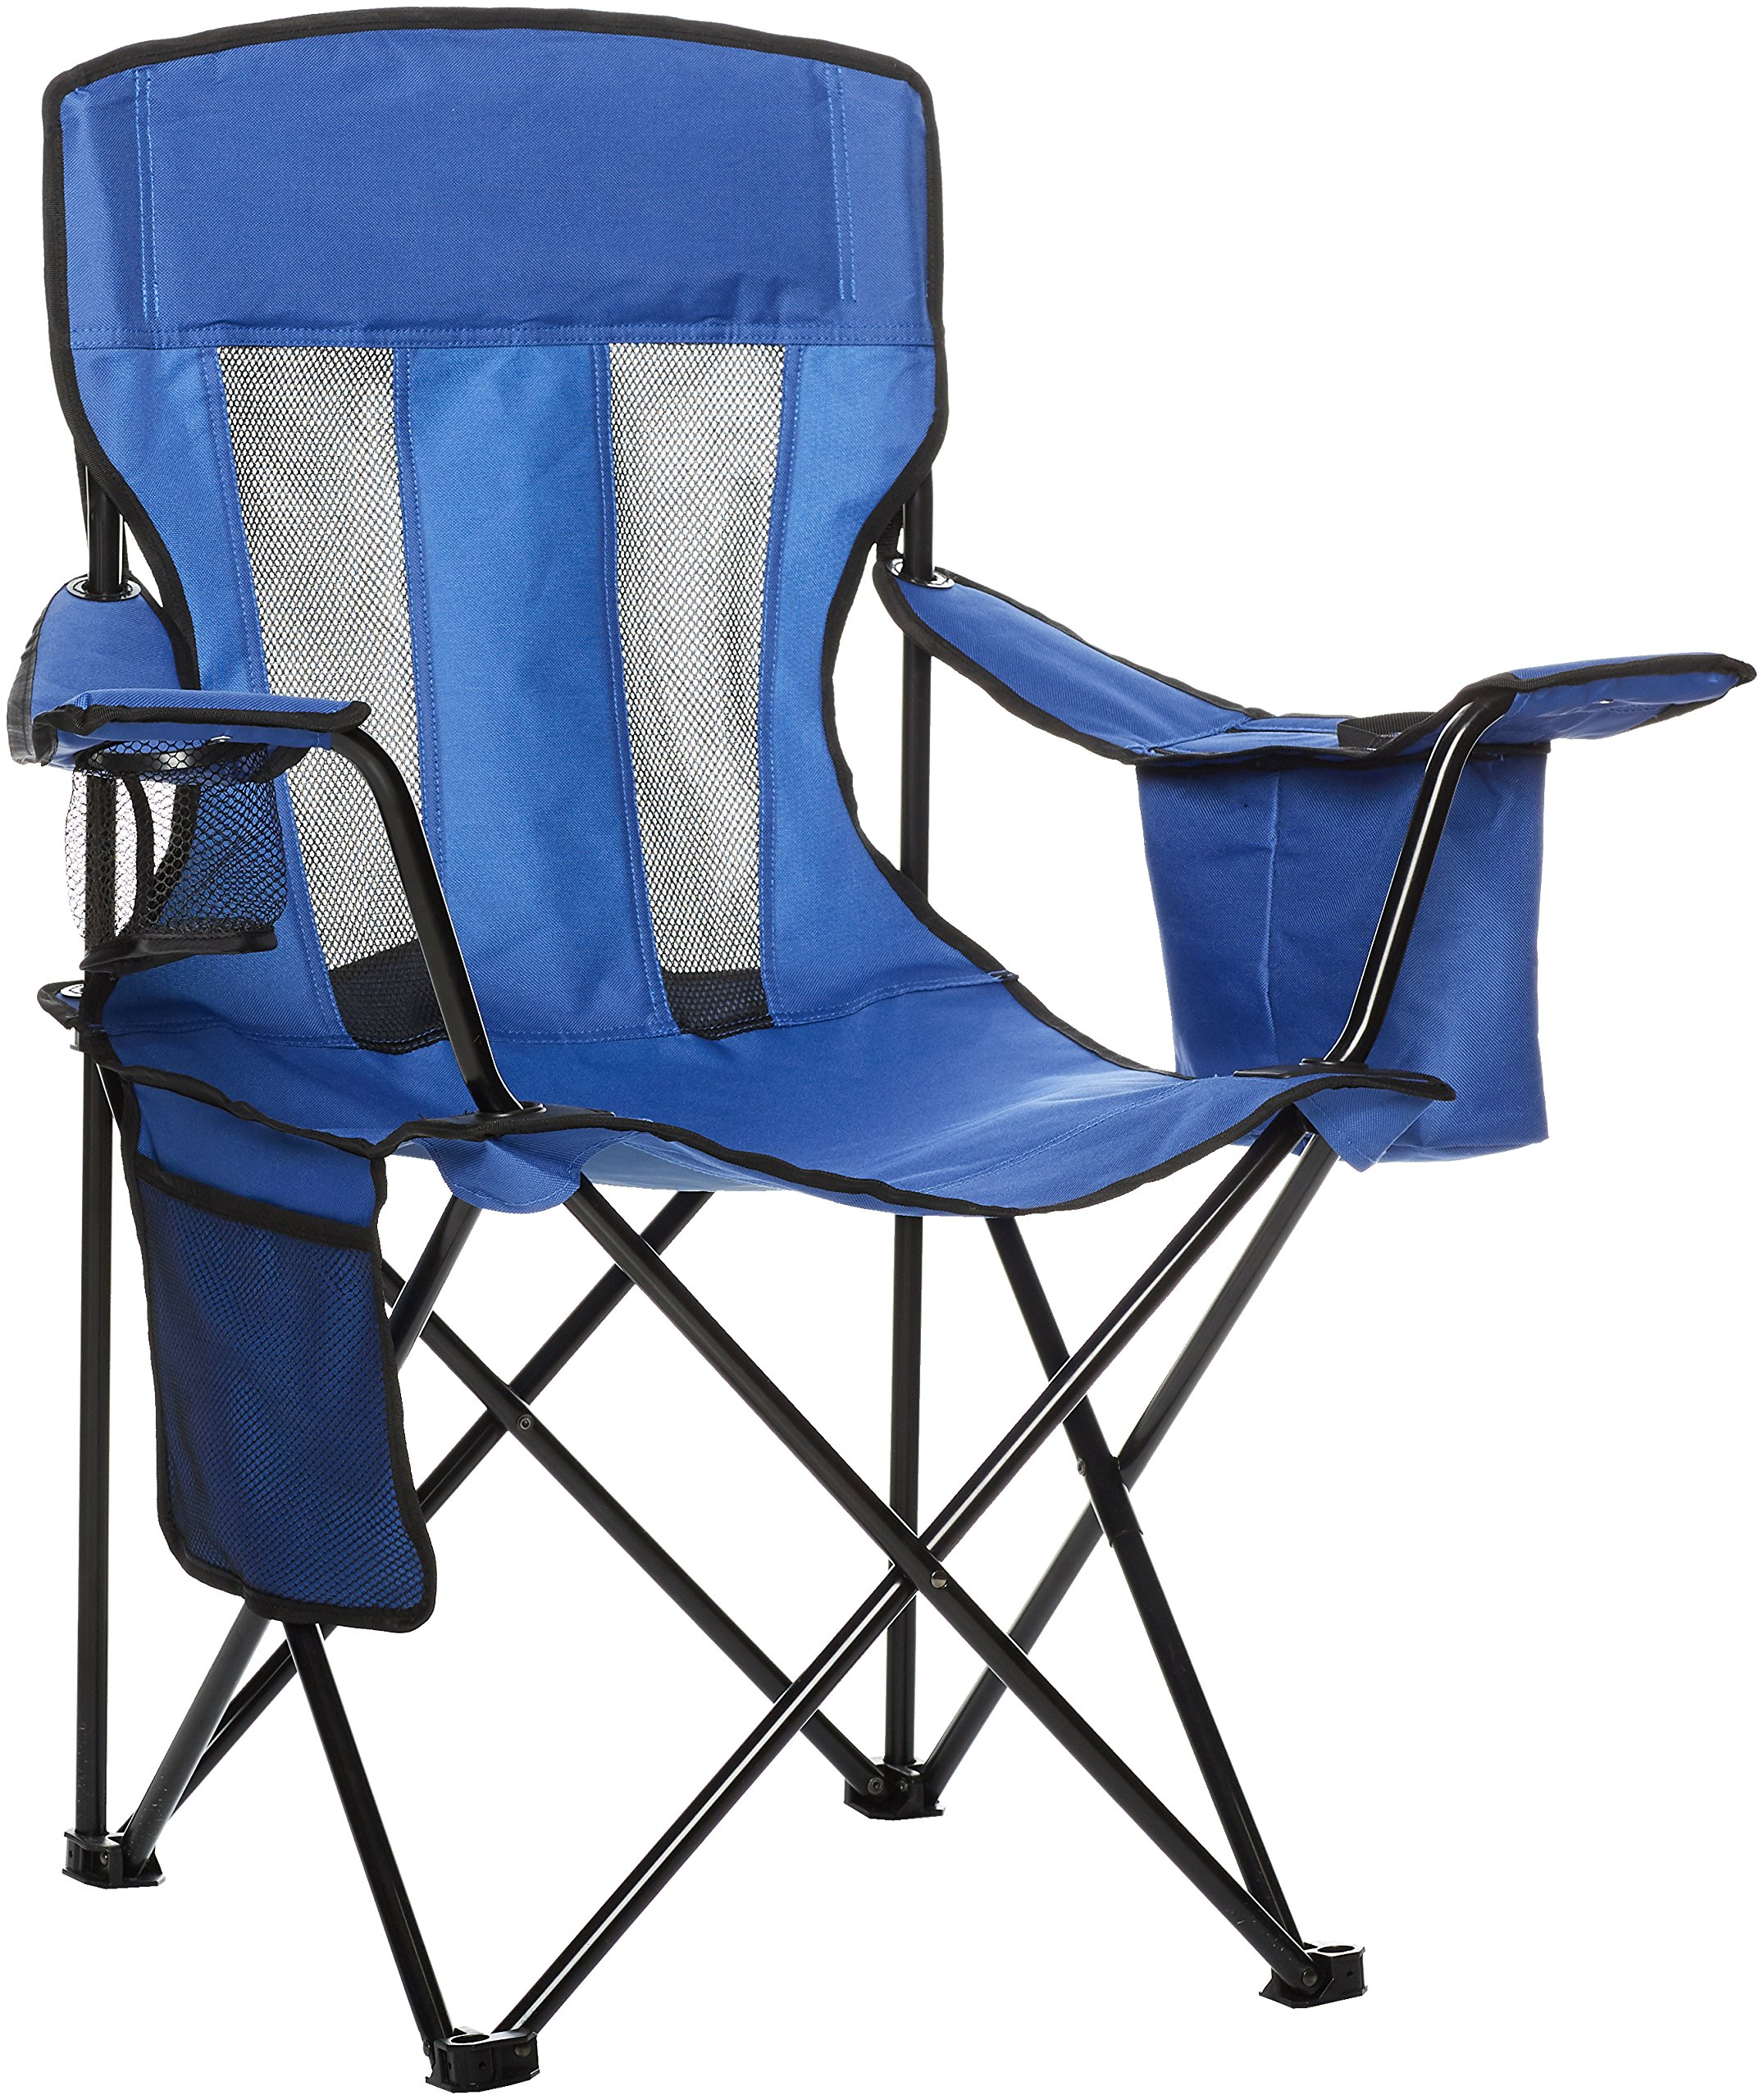 AmazonBasics Mesh Folding Outdoor Camping Chair With Bag - 34 x 20 x 36 Inches, Blue by AmazonBasics